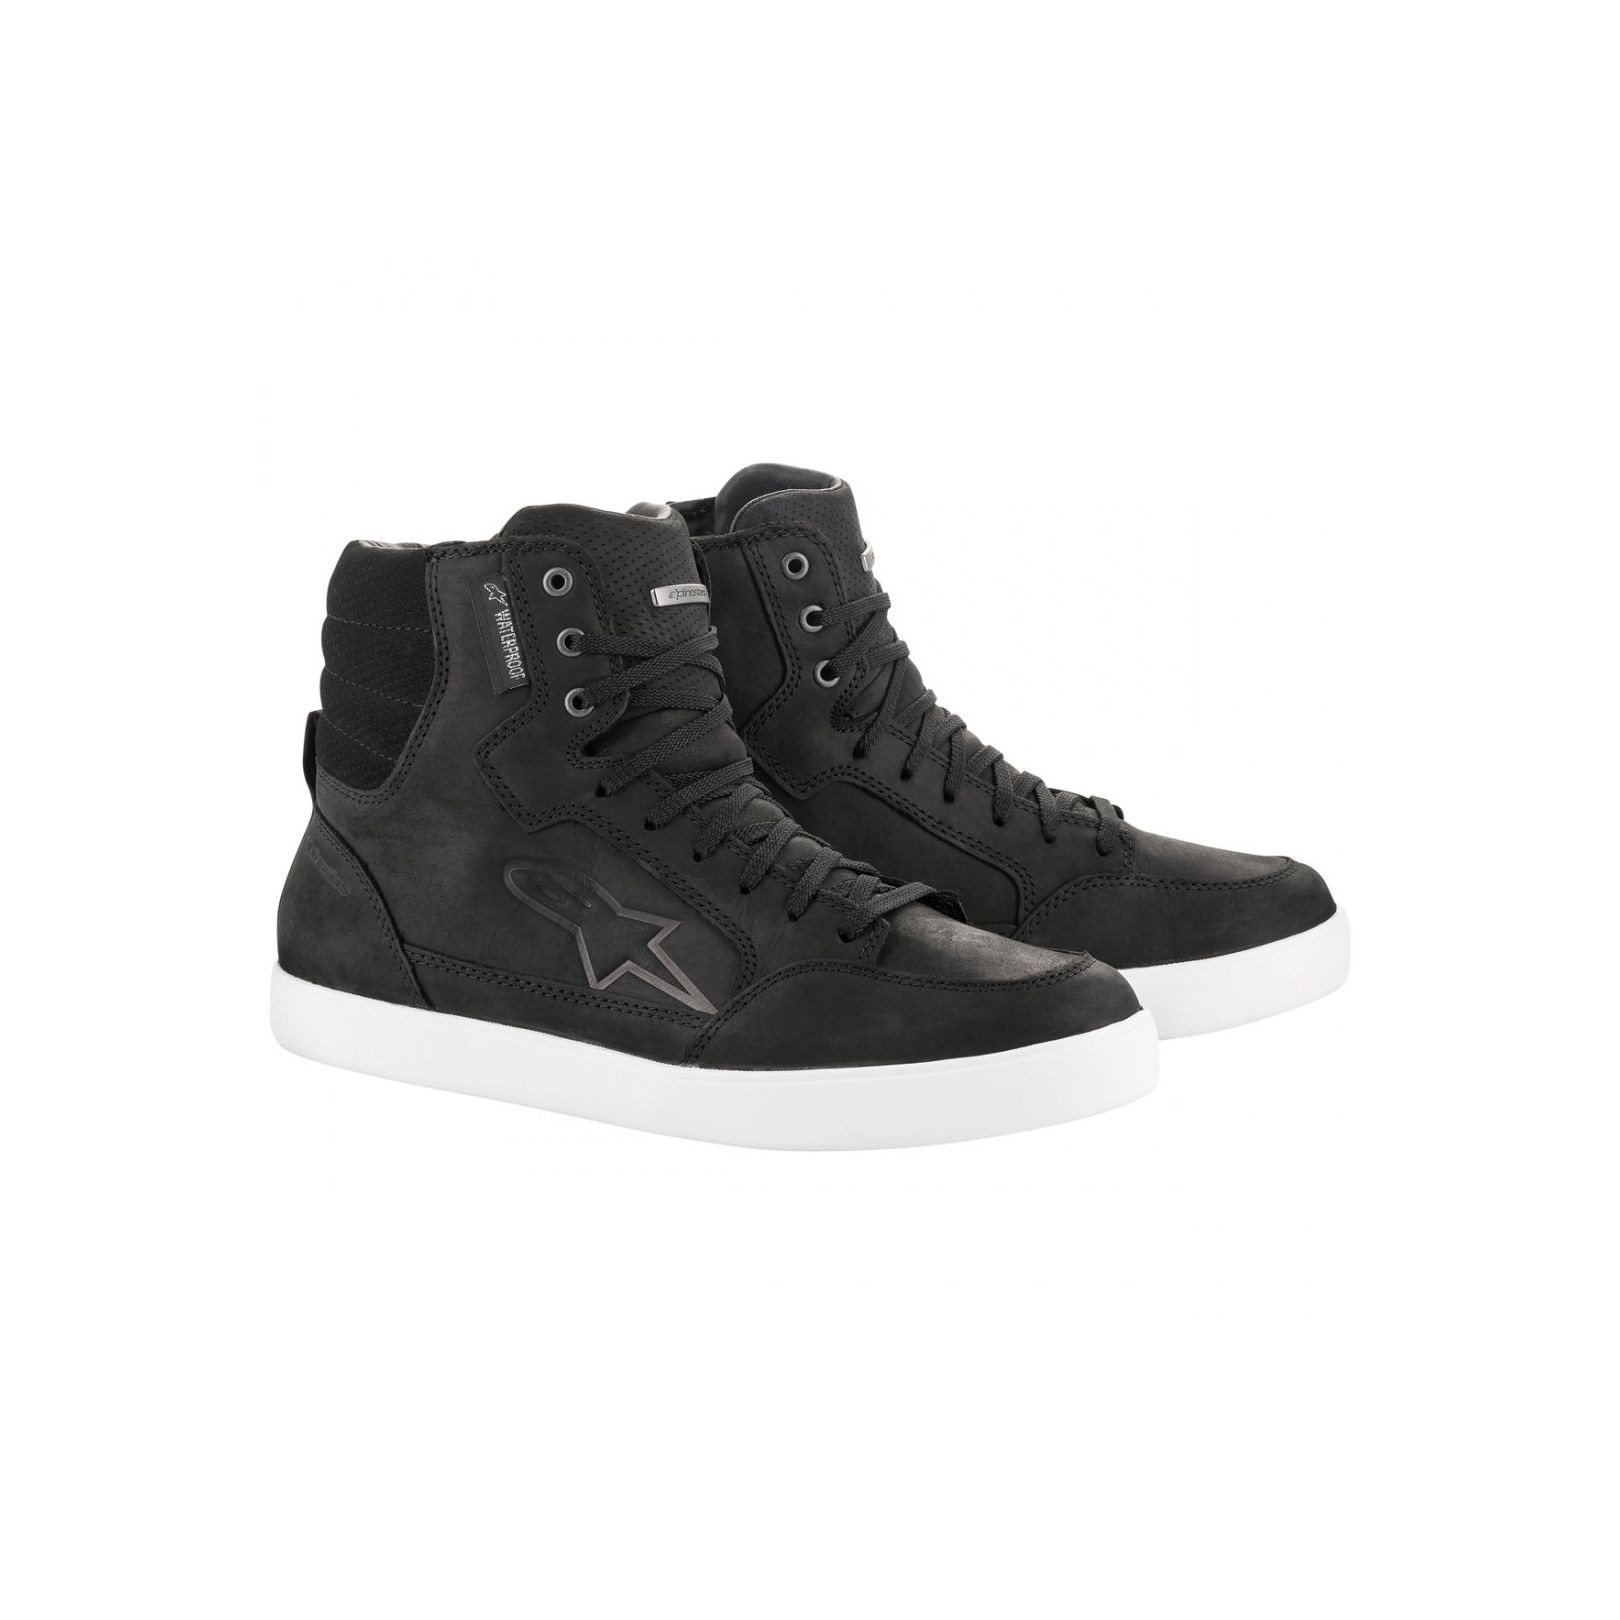 Baskets Alpinestars J-6 Waterproof Noir et Blanc